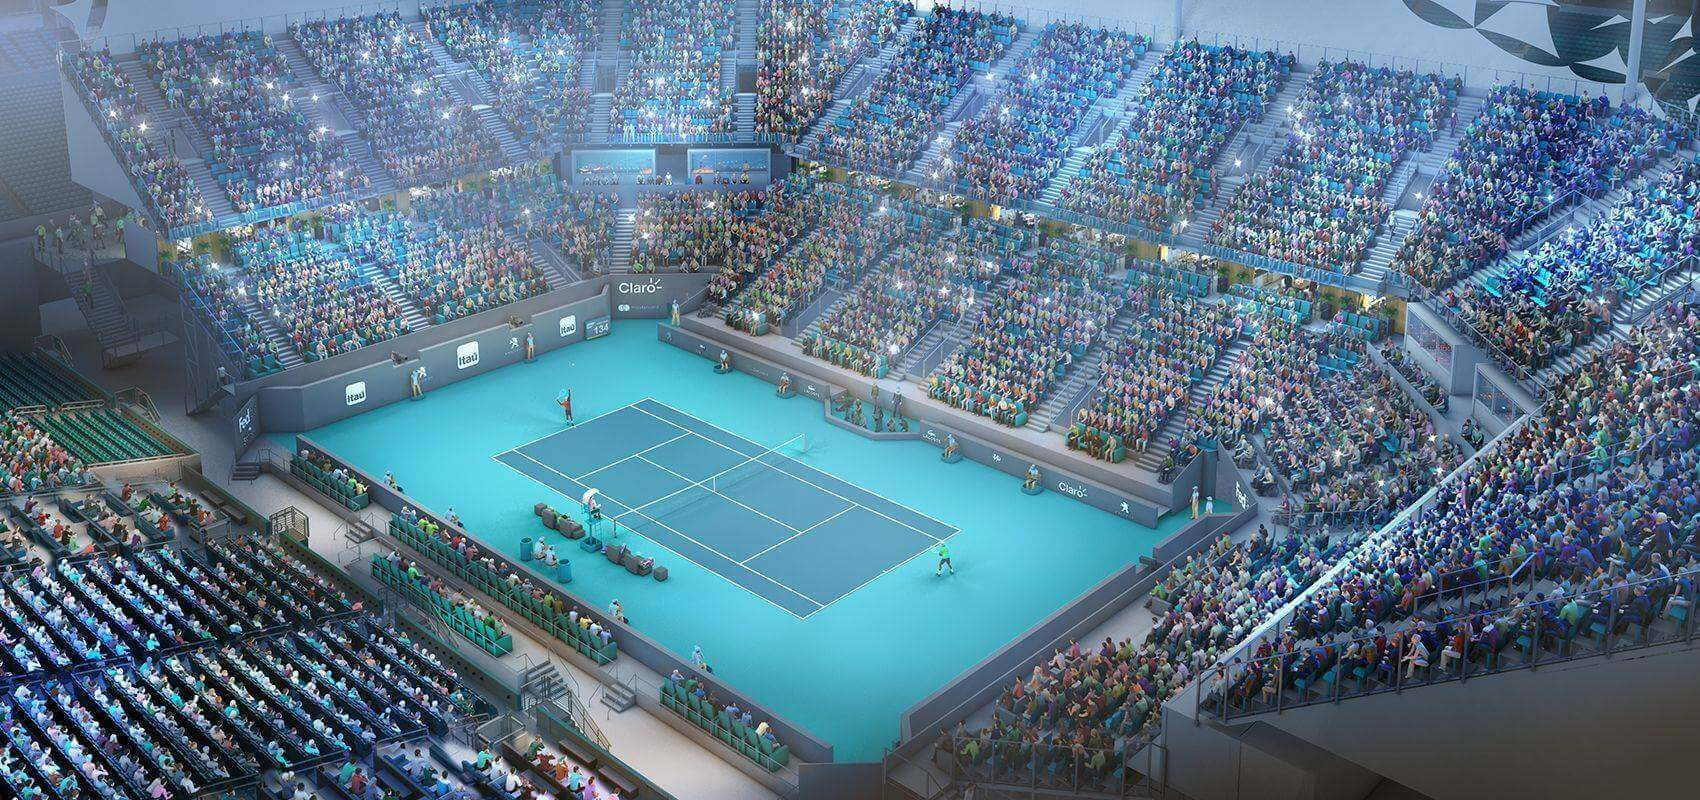 Acordis Re-signed a Multi-Year Partnership with the Miami Open - Acordis